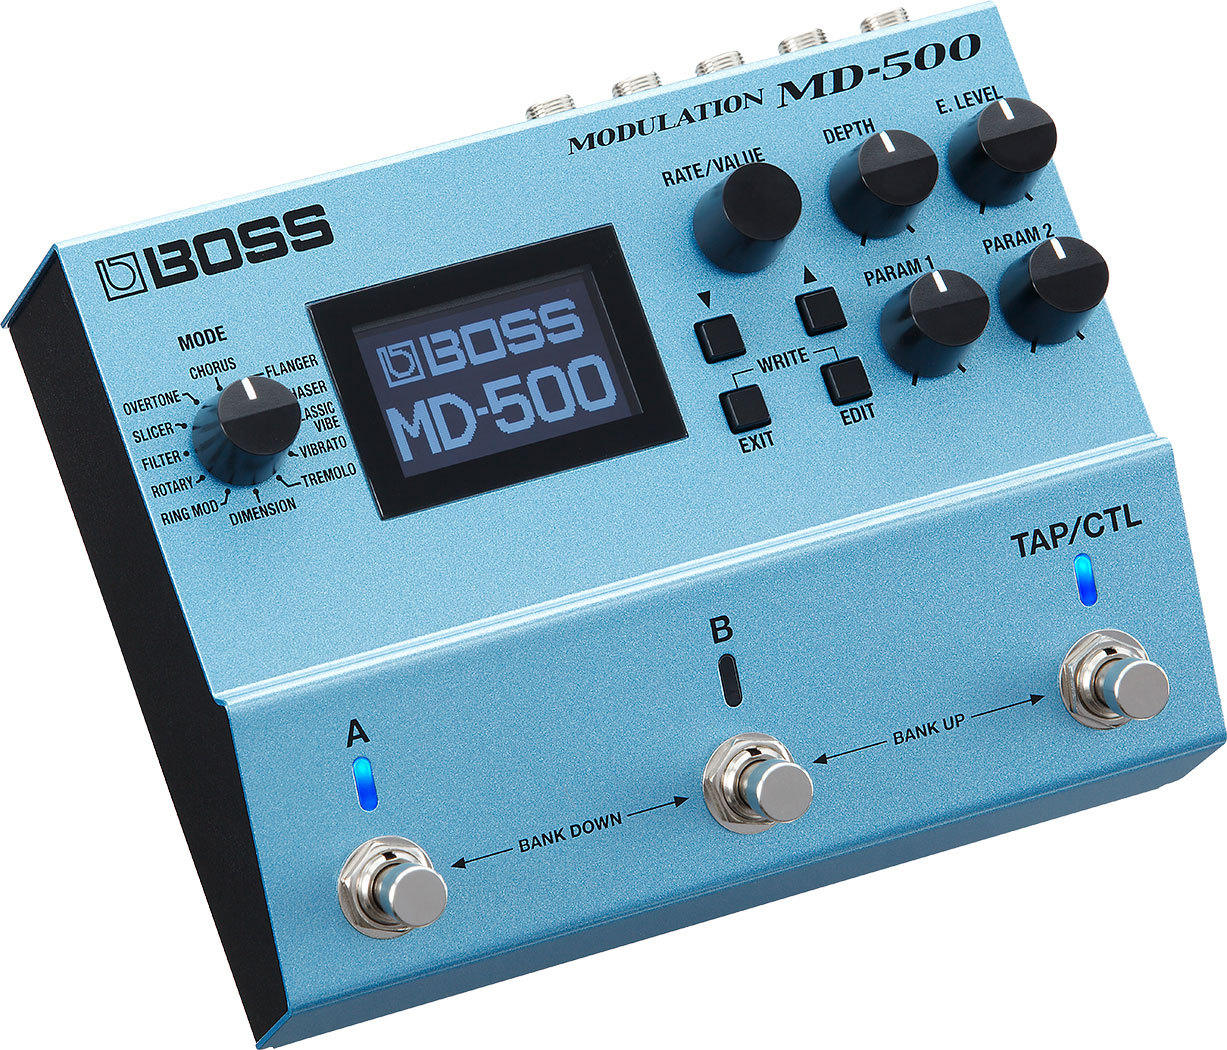 BOSS MD-500 Modulation [space-based multi] [Dejimato limited + special adapter service!]